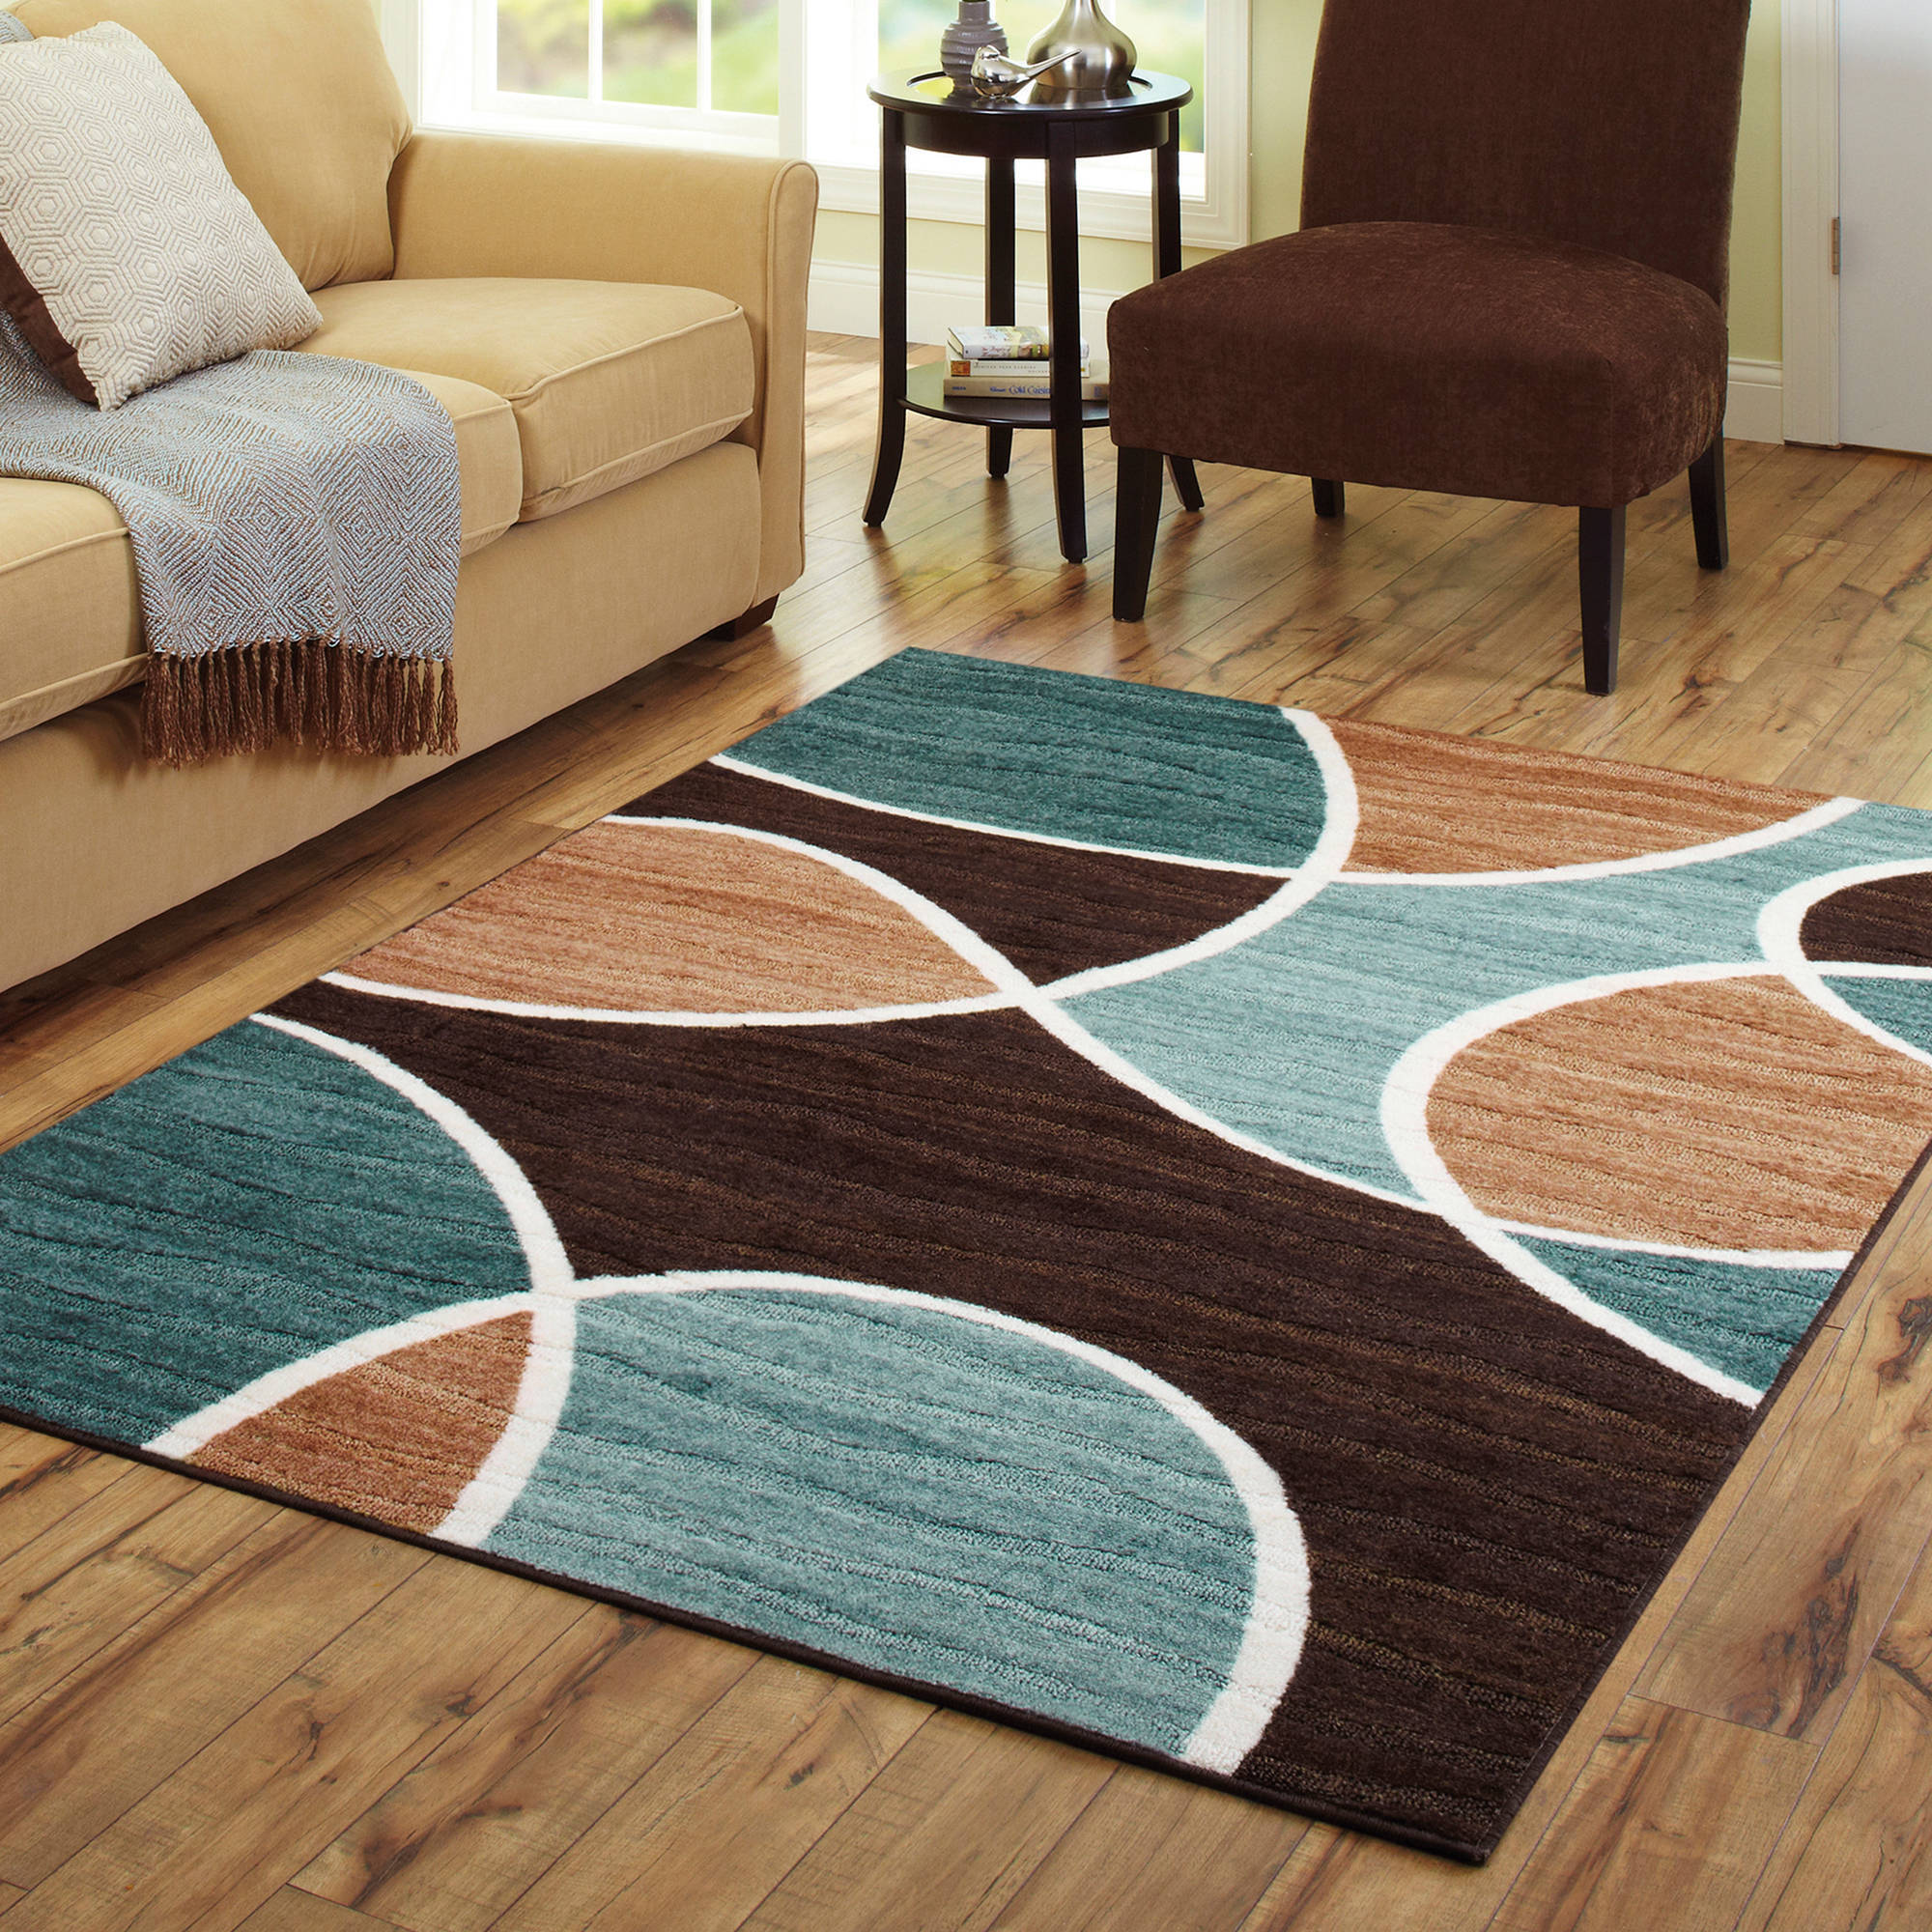 Brown And Aqua Area Rugs Home Decor